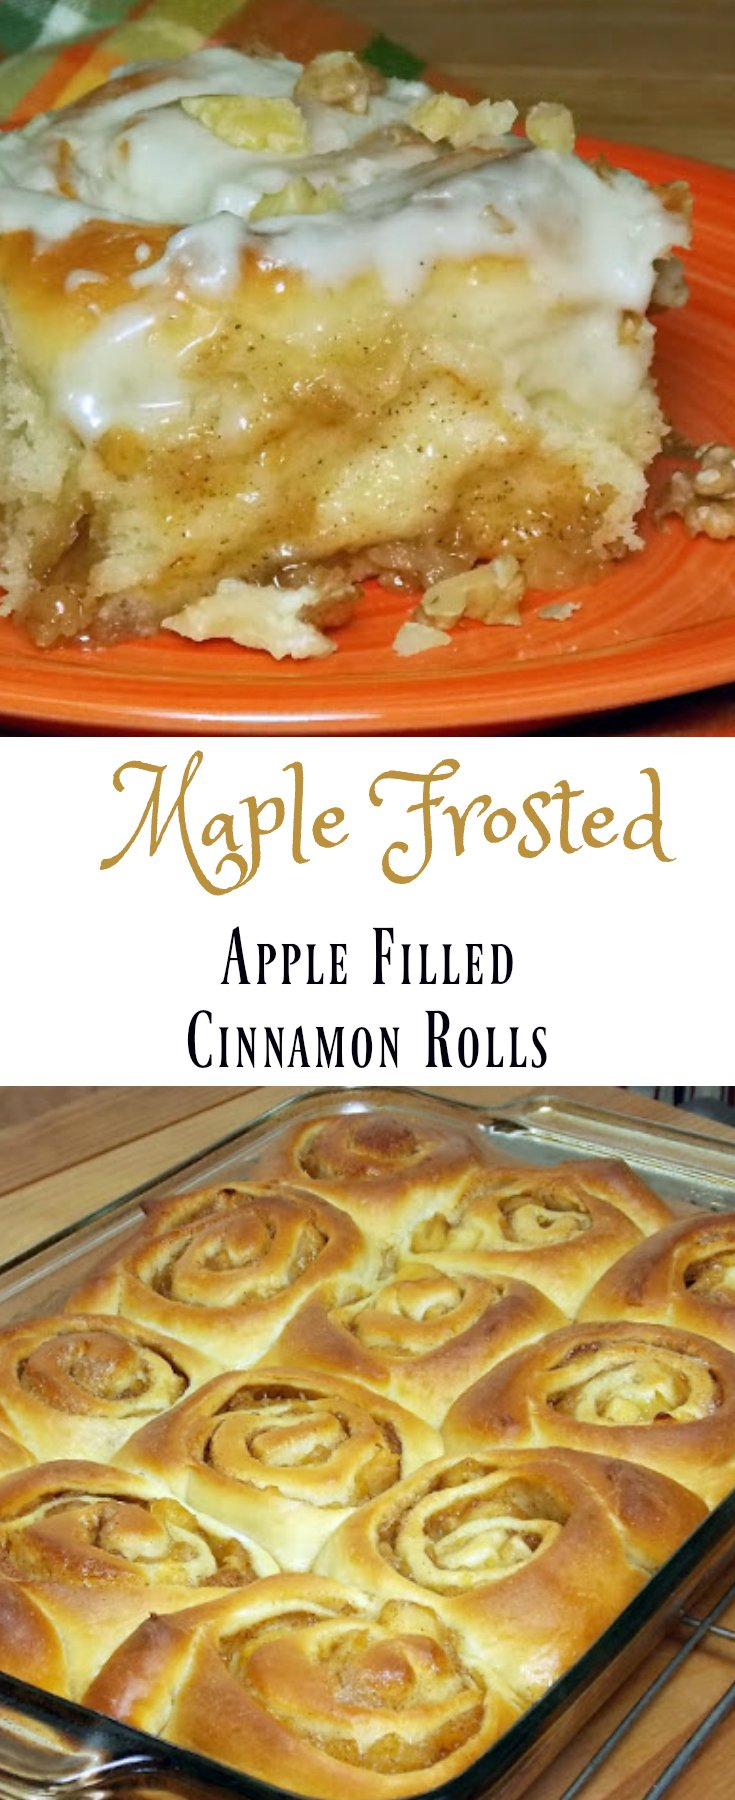 Apple Filled Cinnamon Rolls